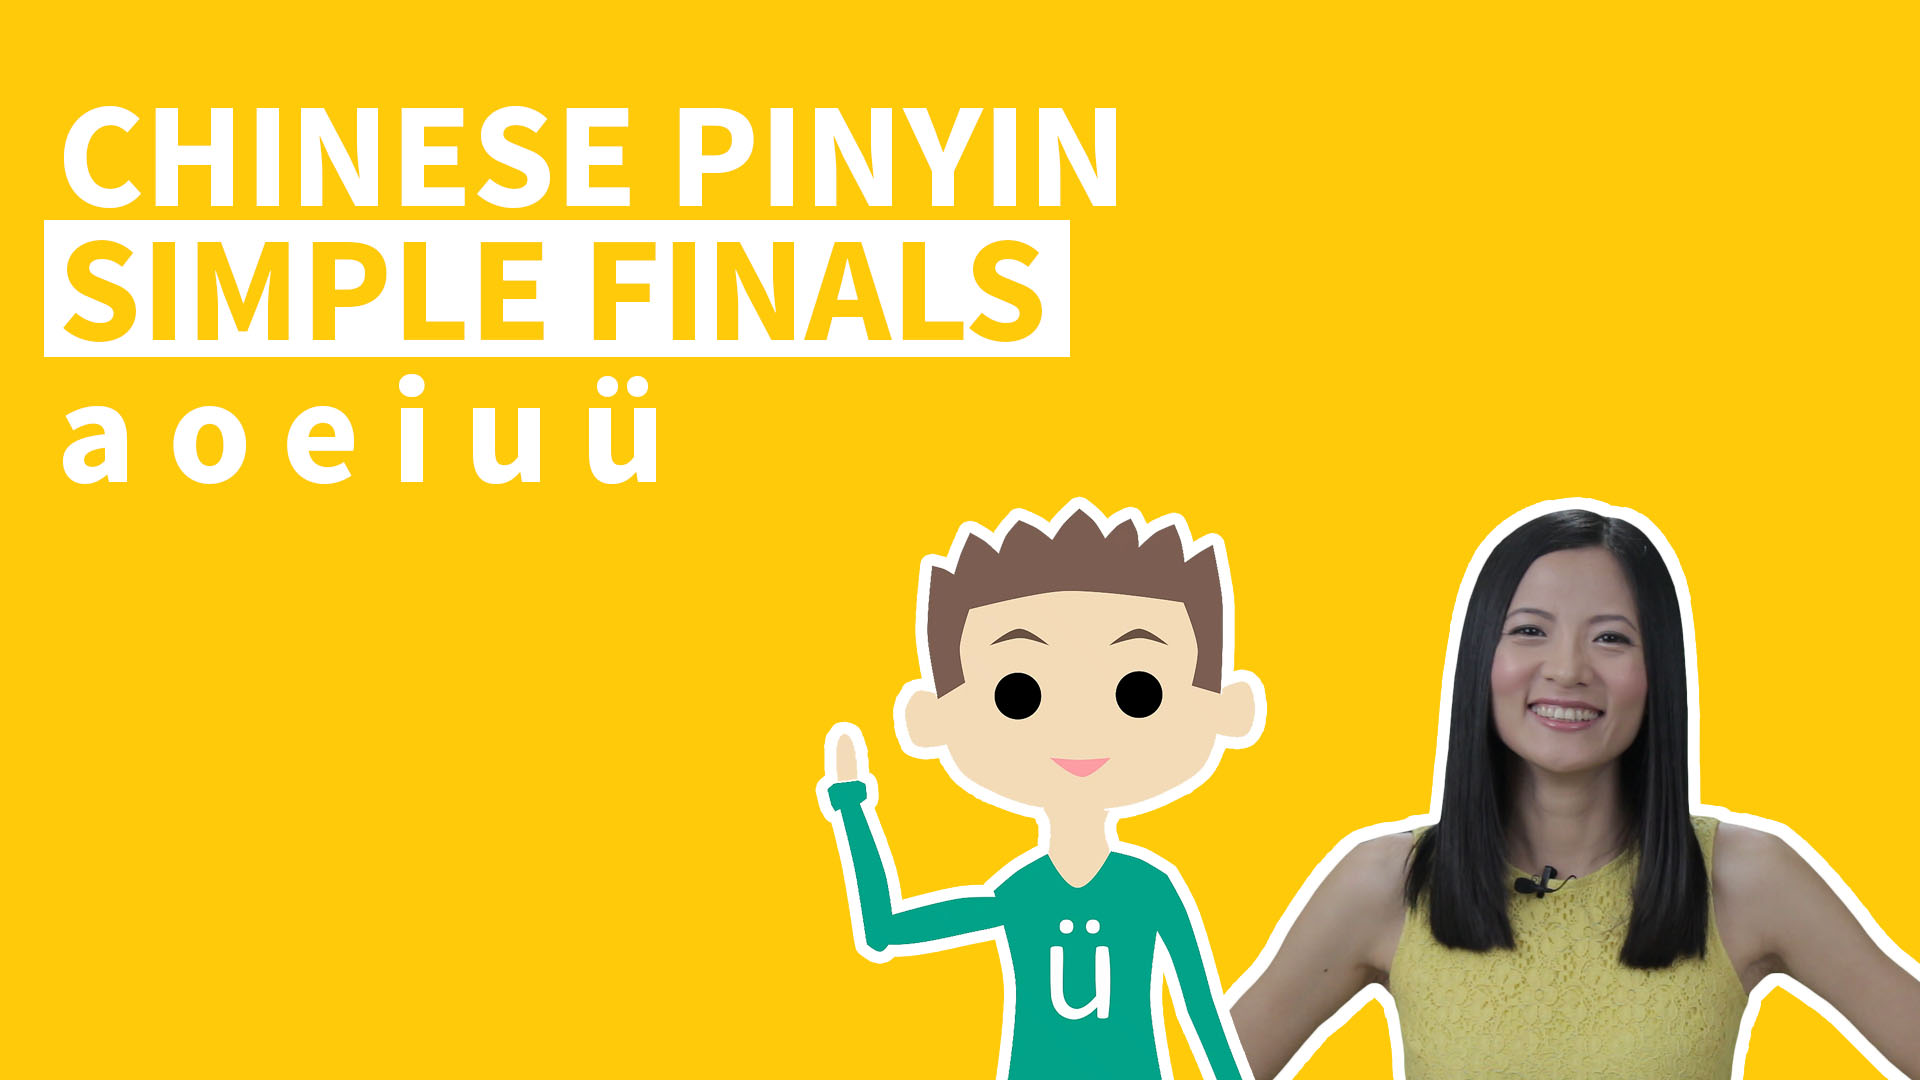 +Video Chinese Pinyin Simple Finals a o e i u ü are the basic Pinyin Vowels. Learn and pracitce listening quizzes, tackling the Pinyin u with two dots!